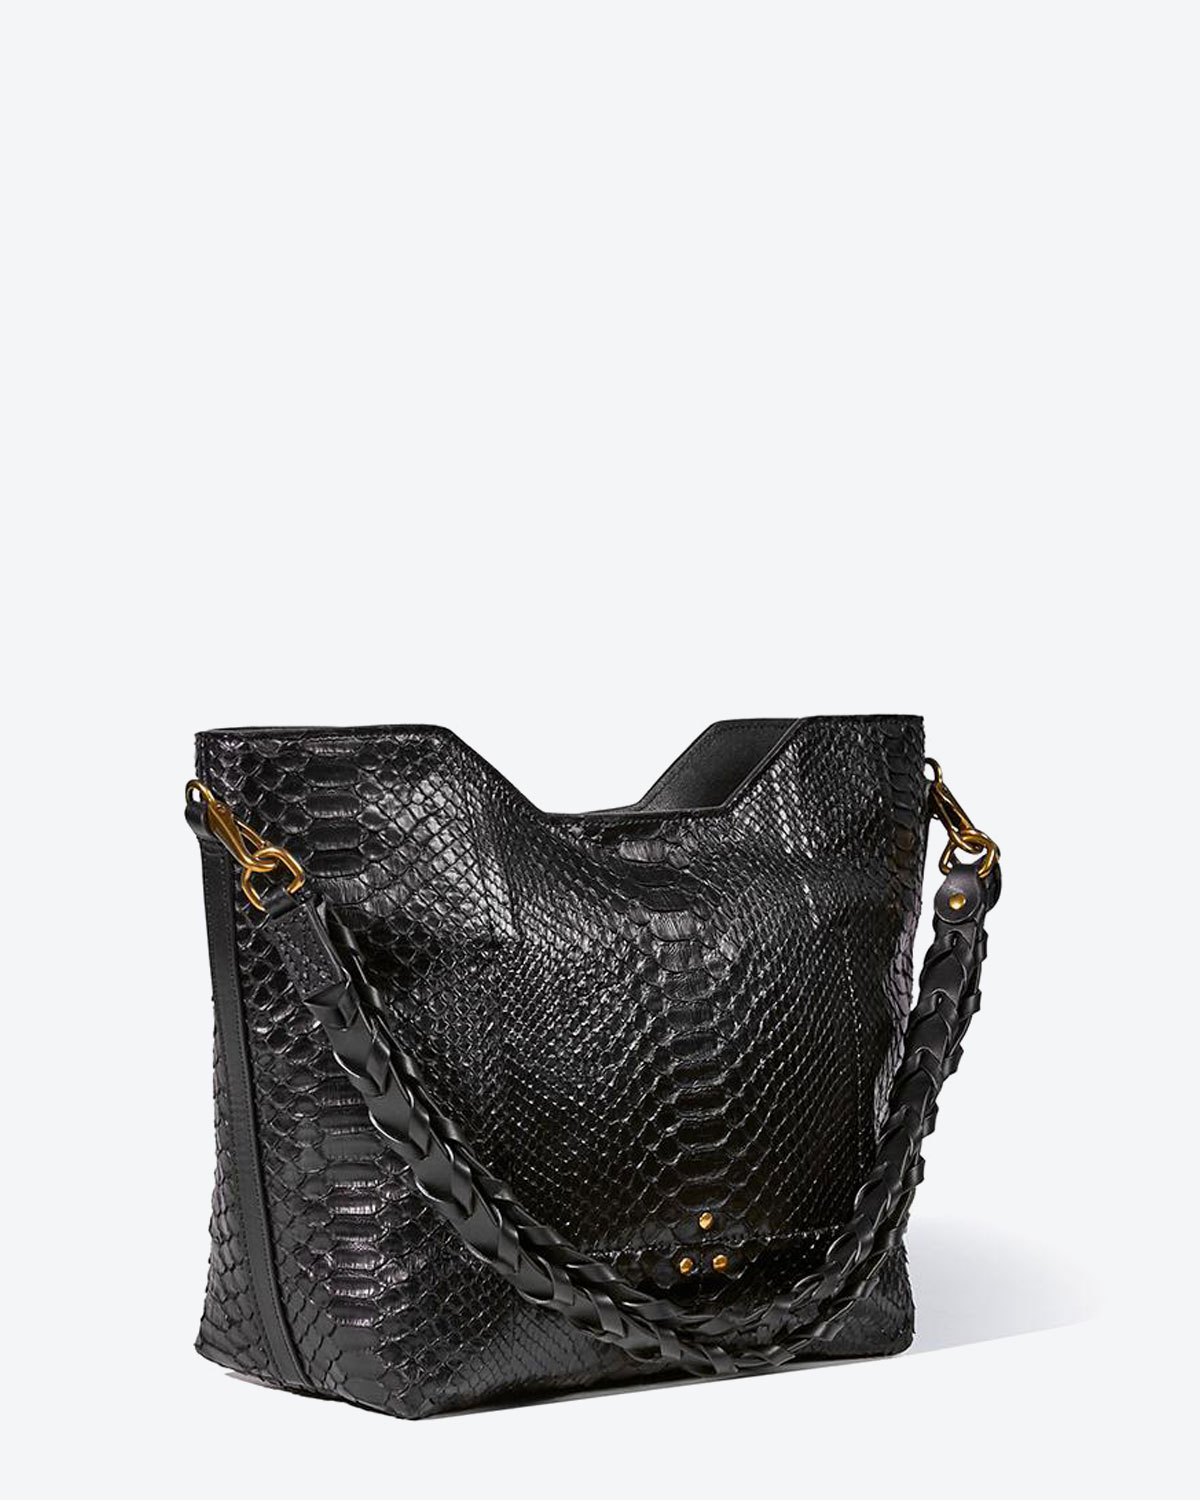 Jérôme Dreyfuss Collection Pierre - Python Noir